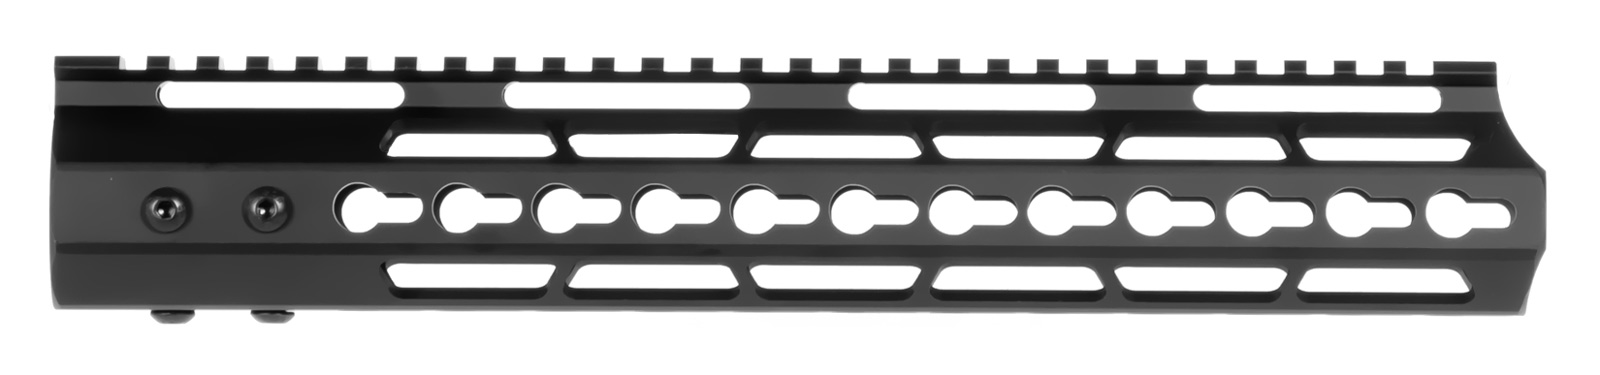 ar-15-rail-12-cbc-arms-tactical-keymod-ar-15-handguard-rail